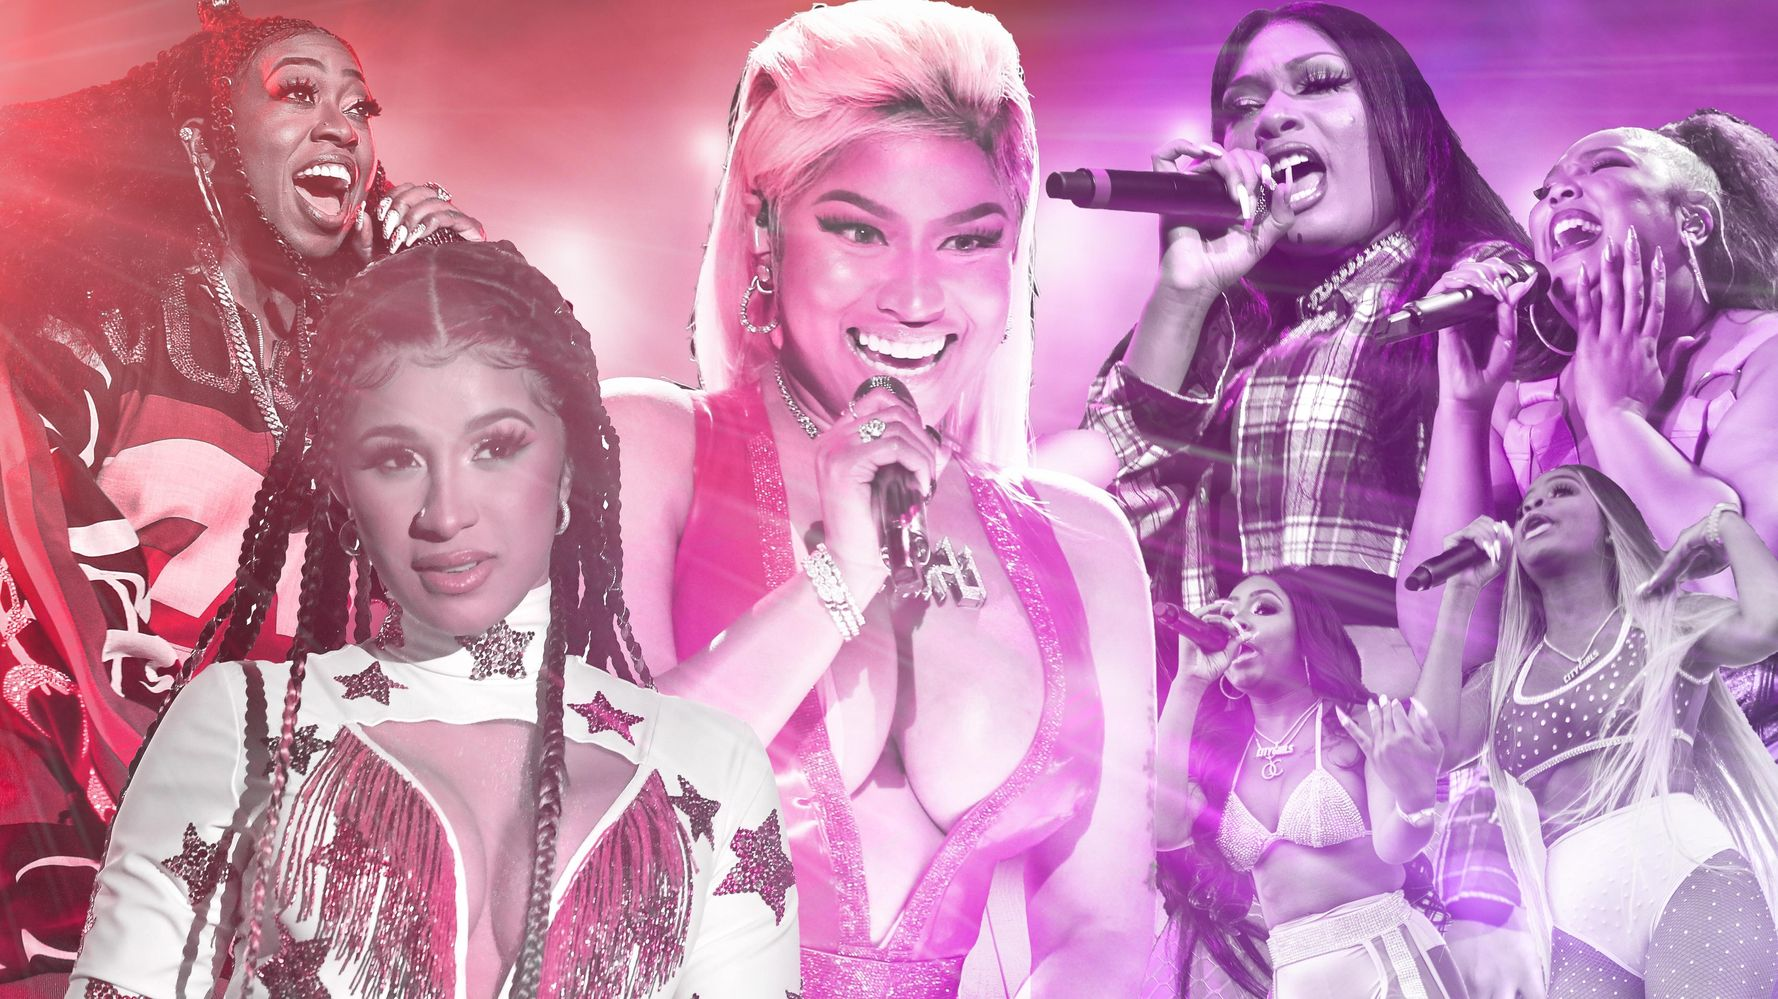 Megan Thee Stallion, Nicki Minaj And The Female Rap Collaborations Taking Over Hip-Hop